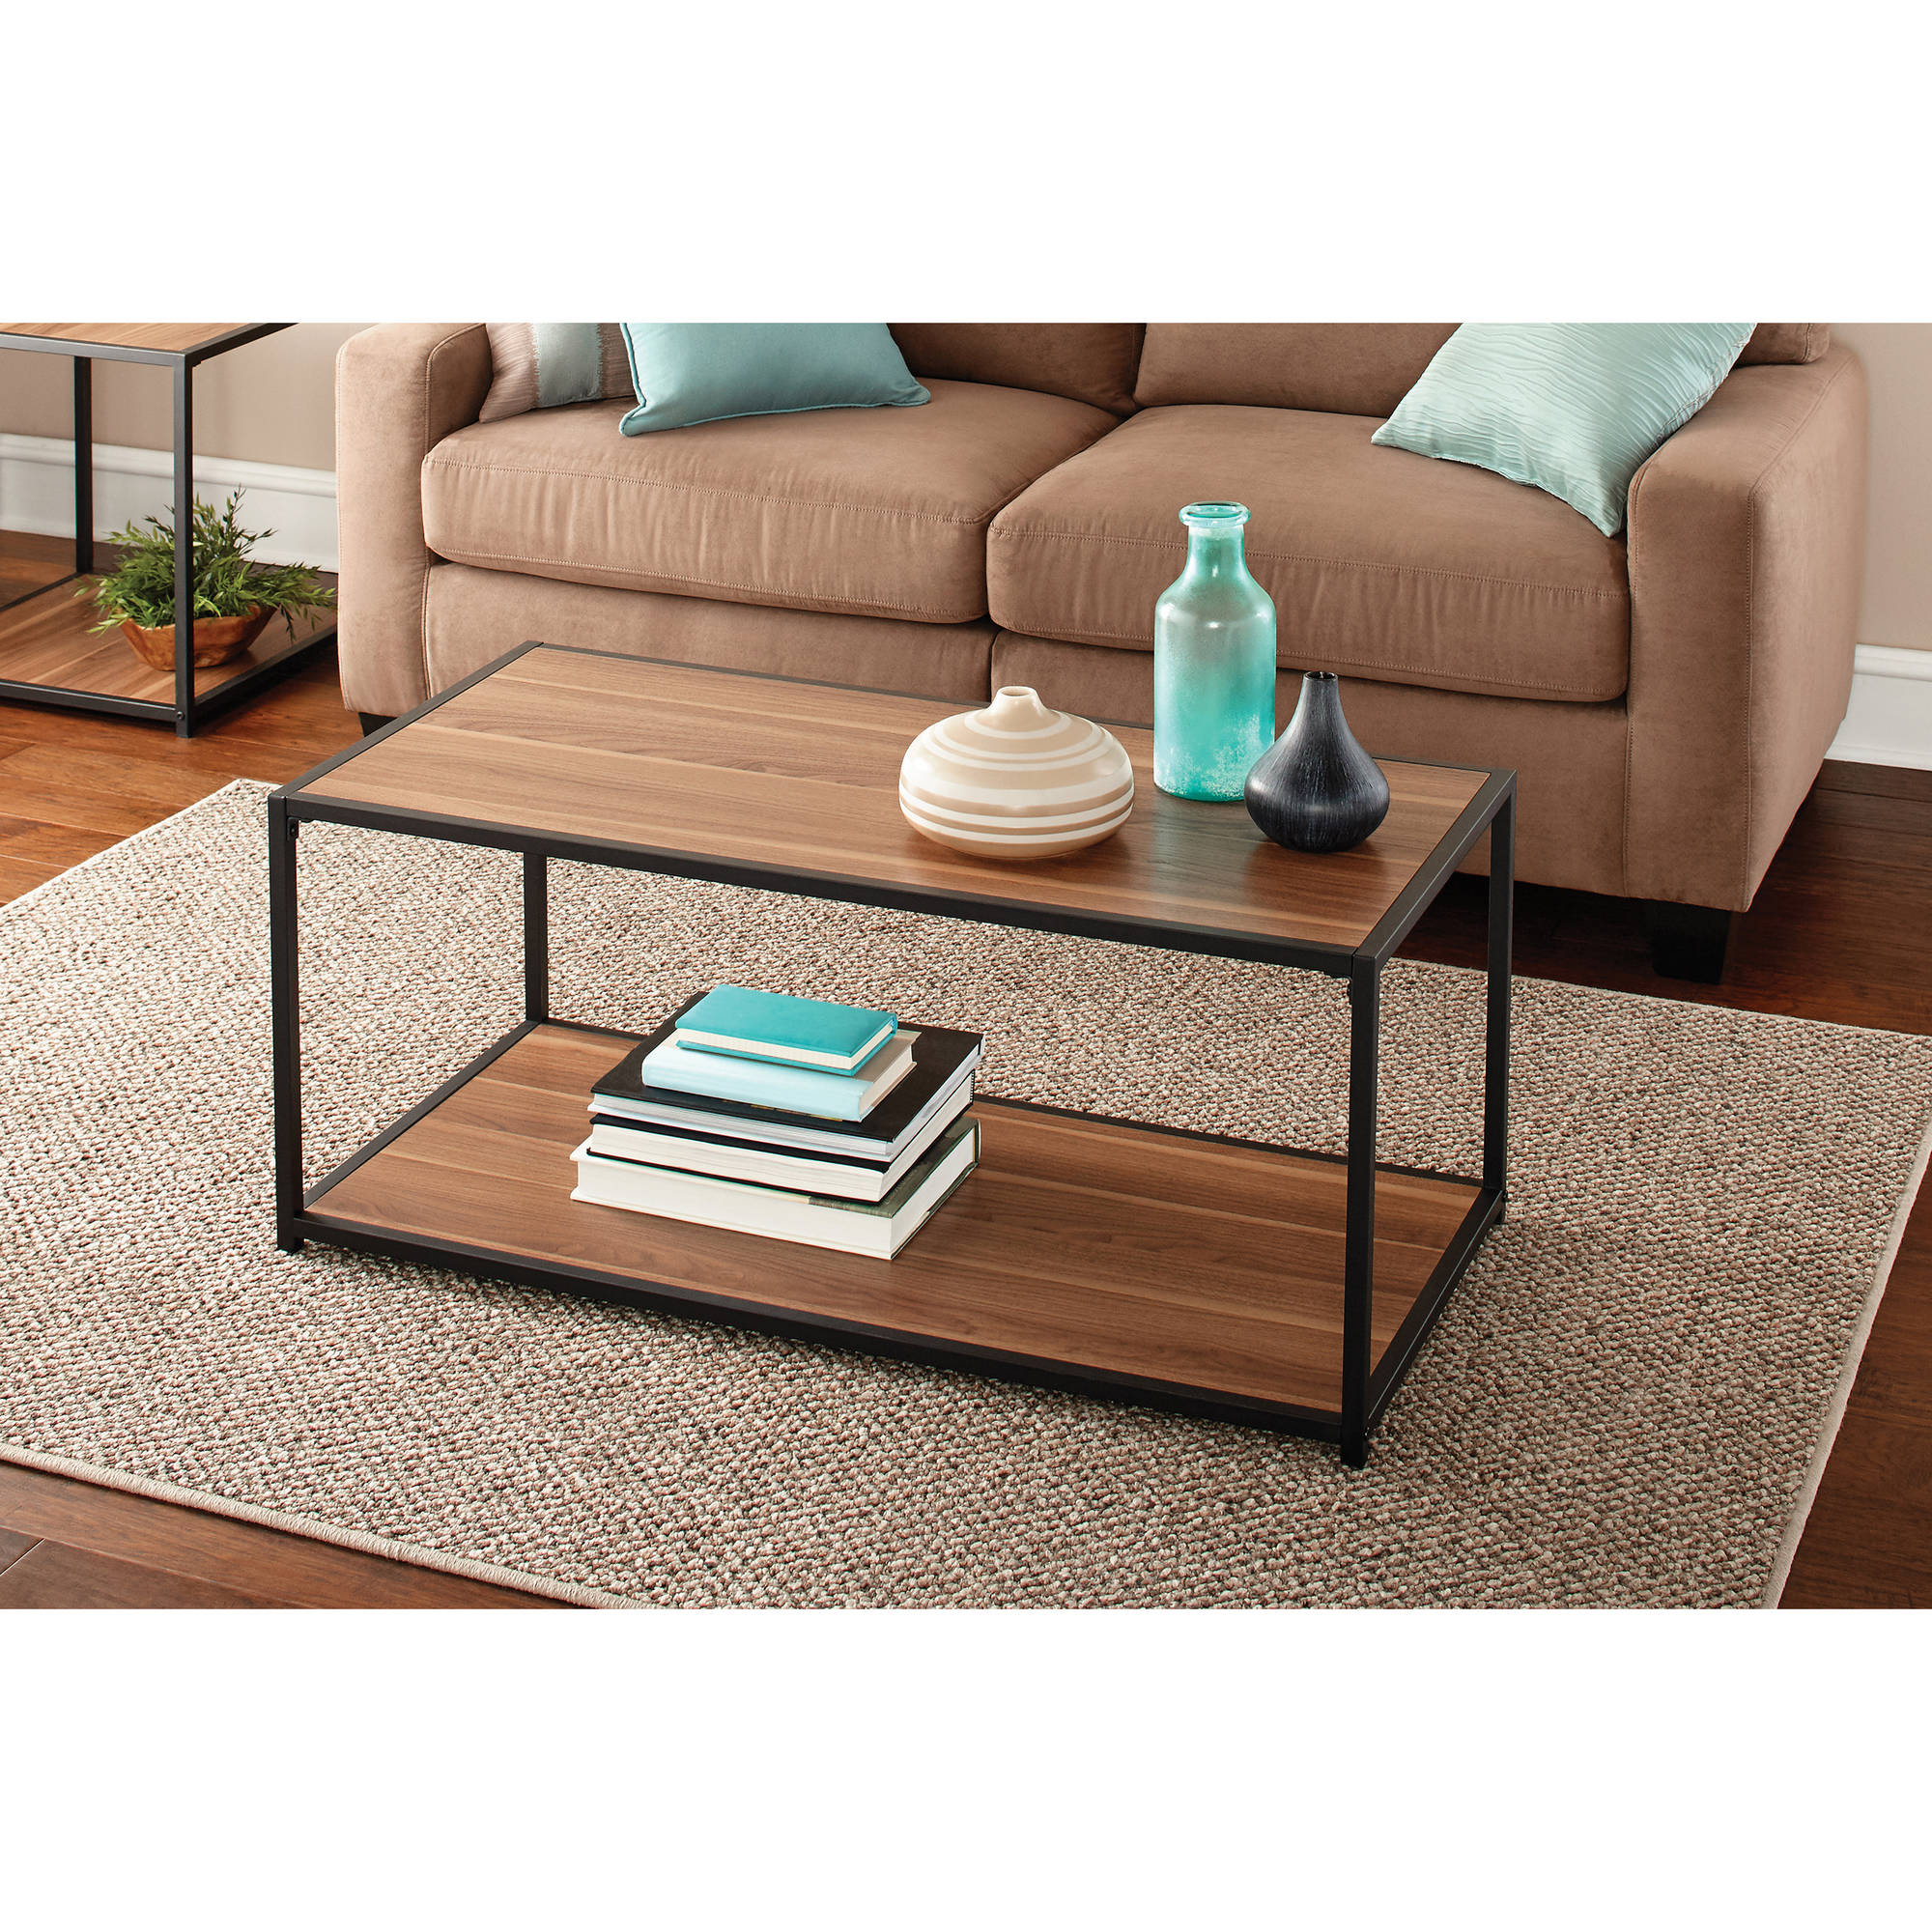 Mainstays Lift Top Coffee Table Multiple Colors Walmart